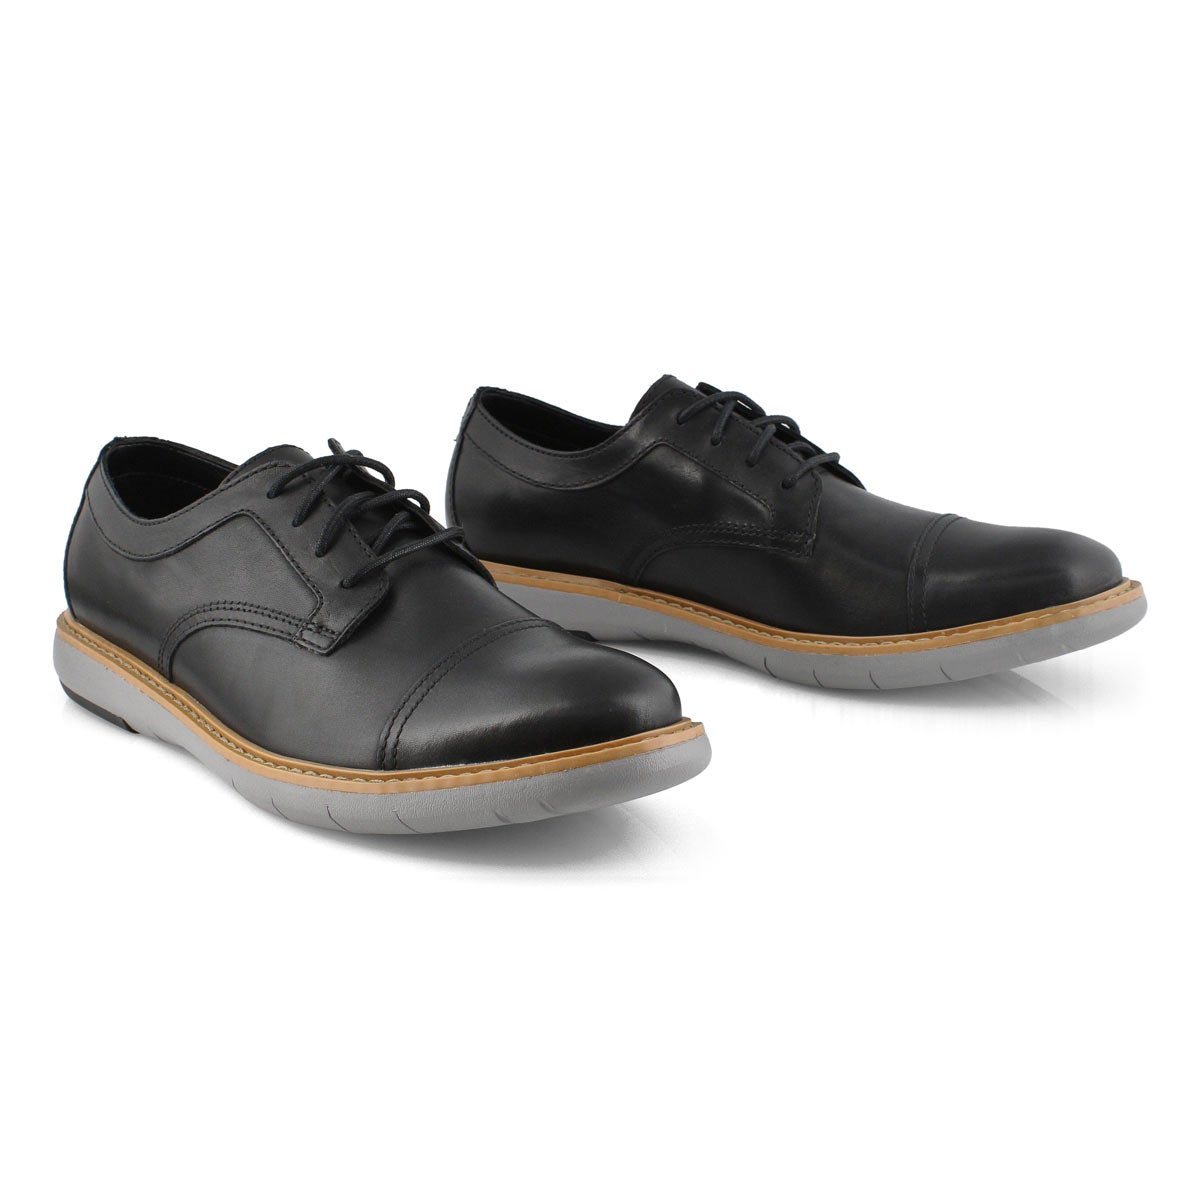 Mns Draper Cap black casual oxford